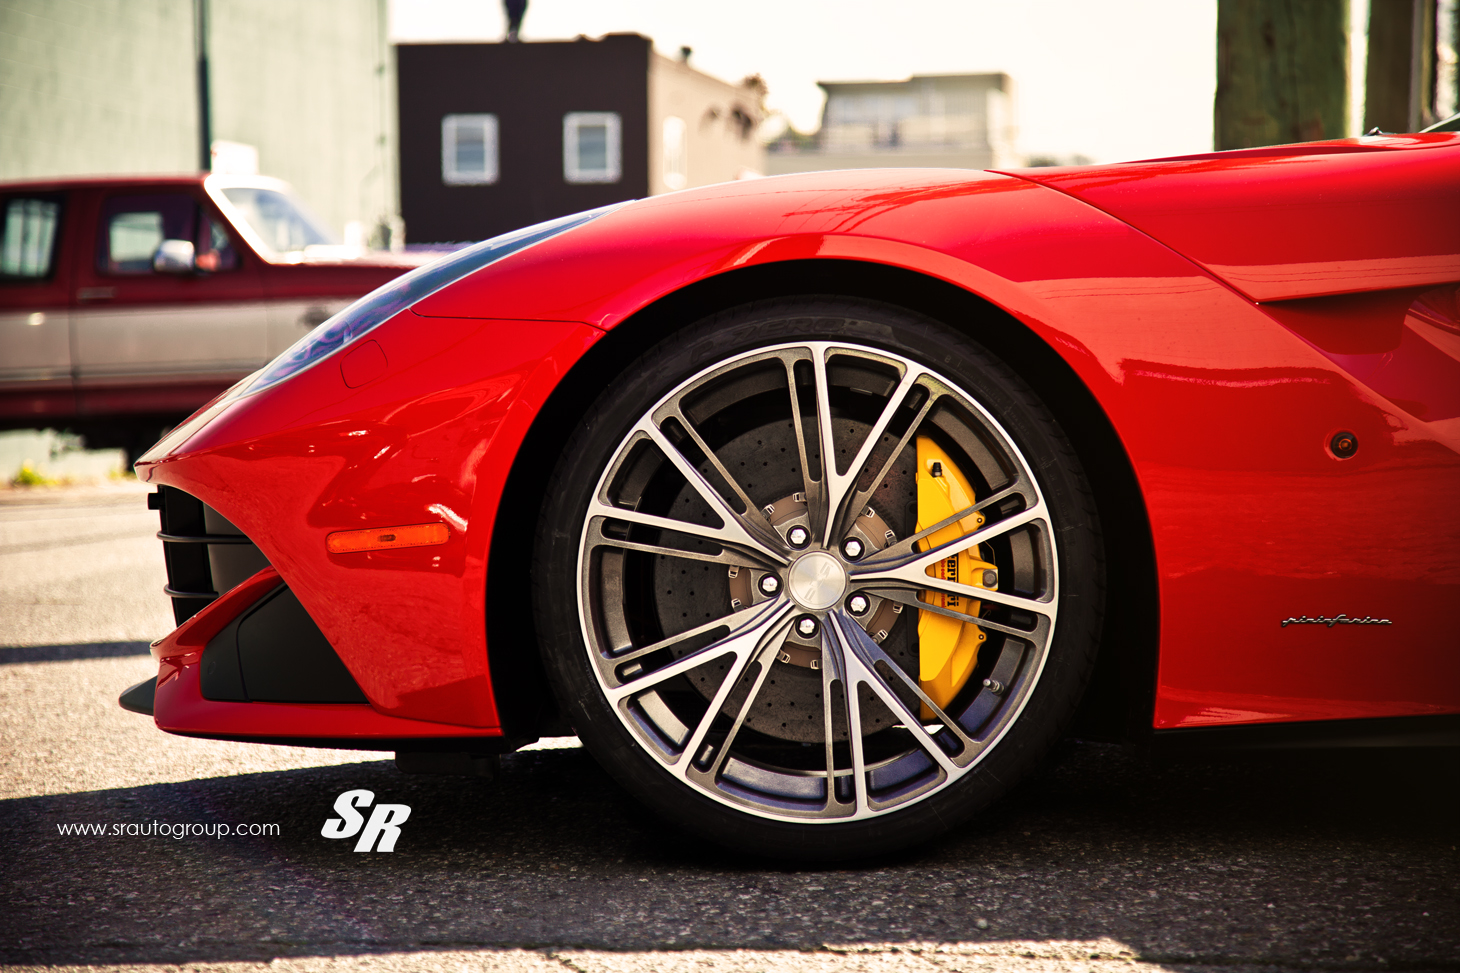 Ferrari F12 Berlinetta wheels #4